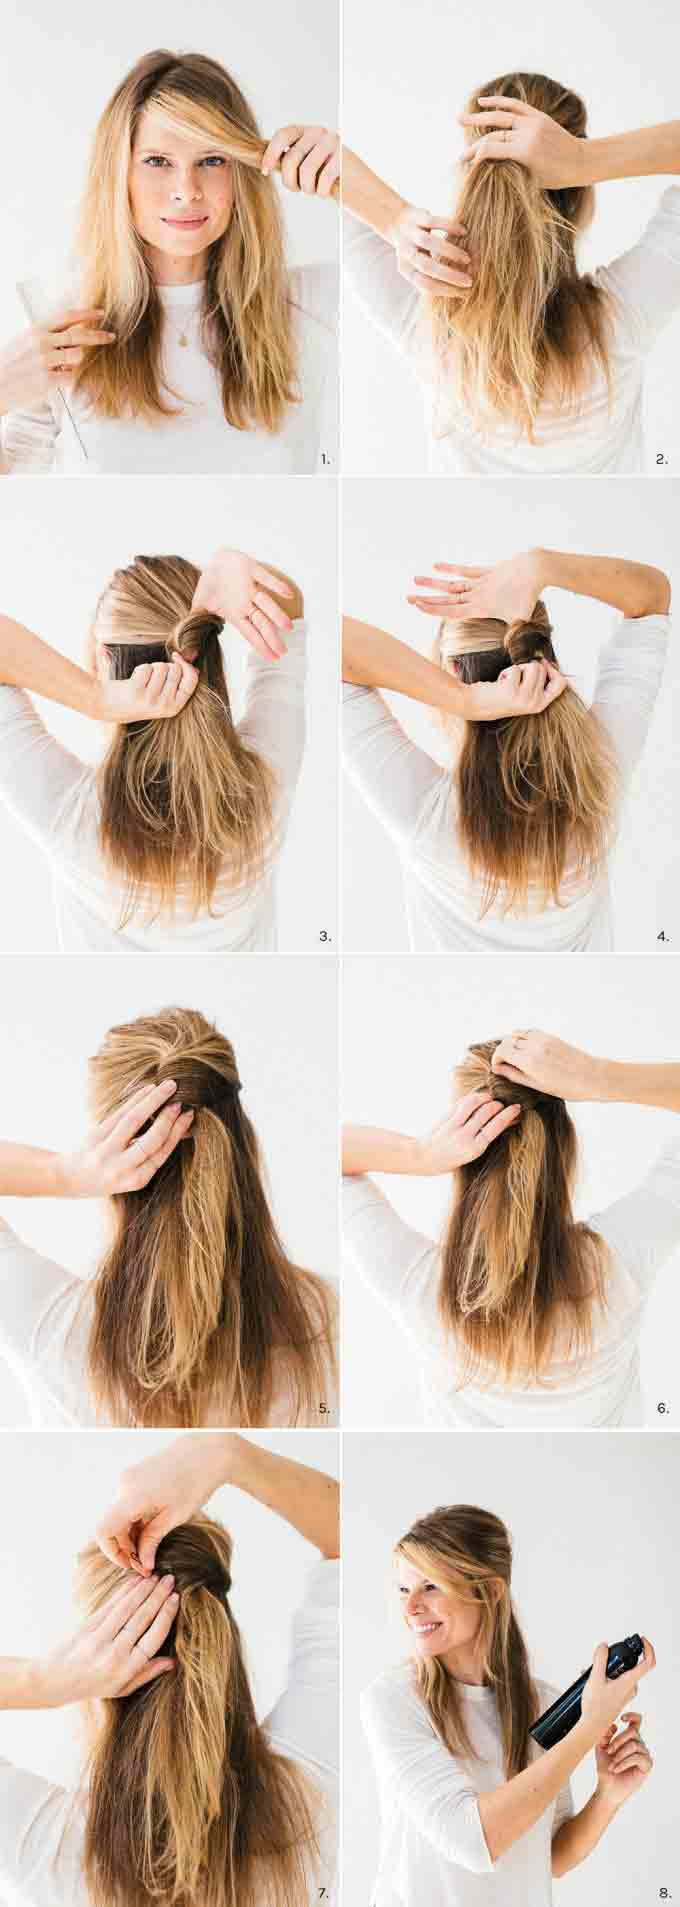 Latest hair twist hairstyle step by step tutorial